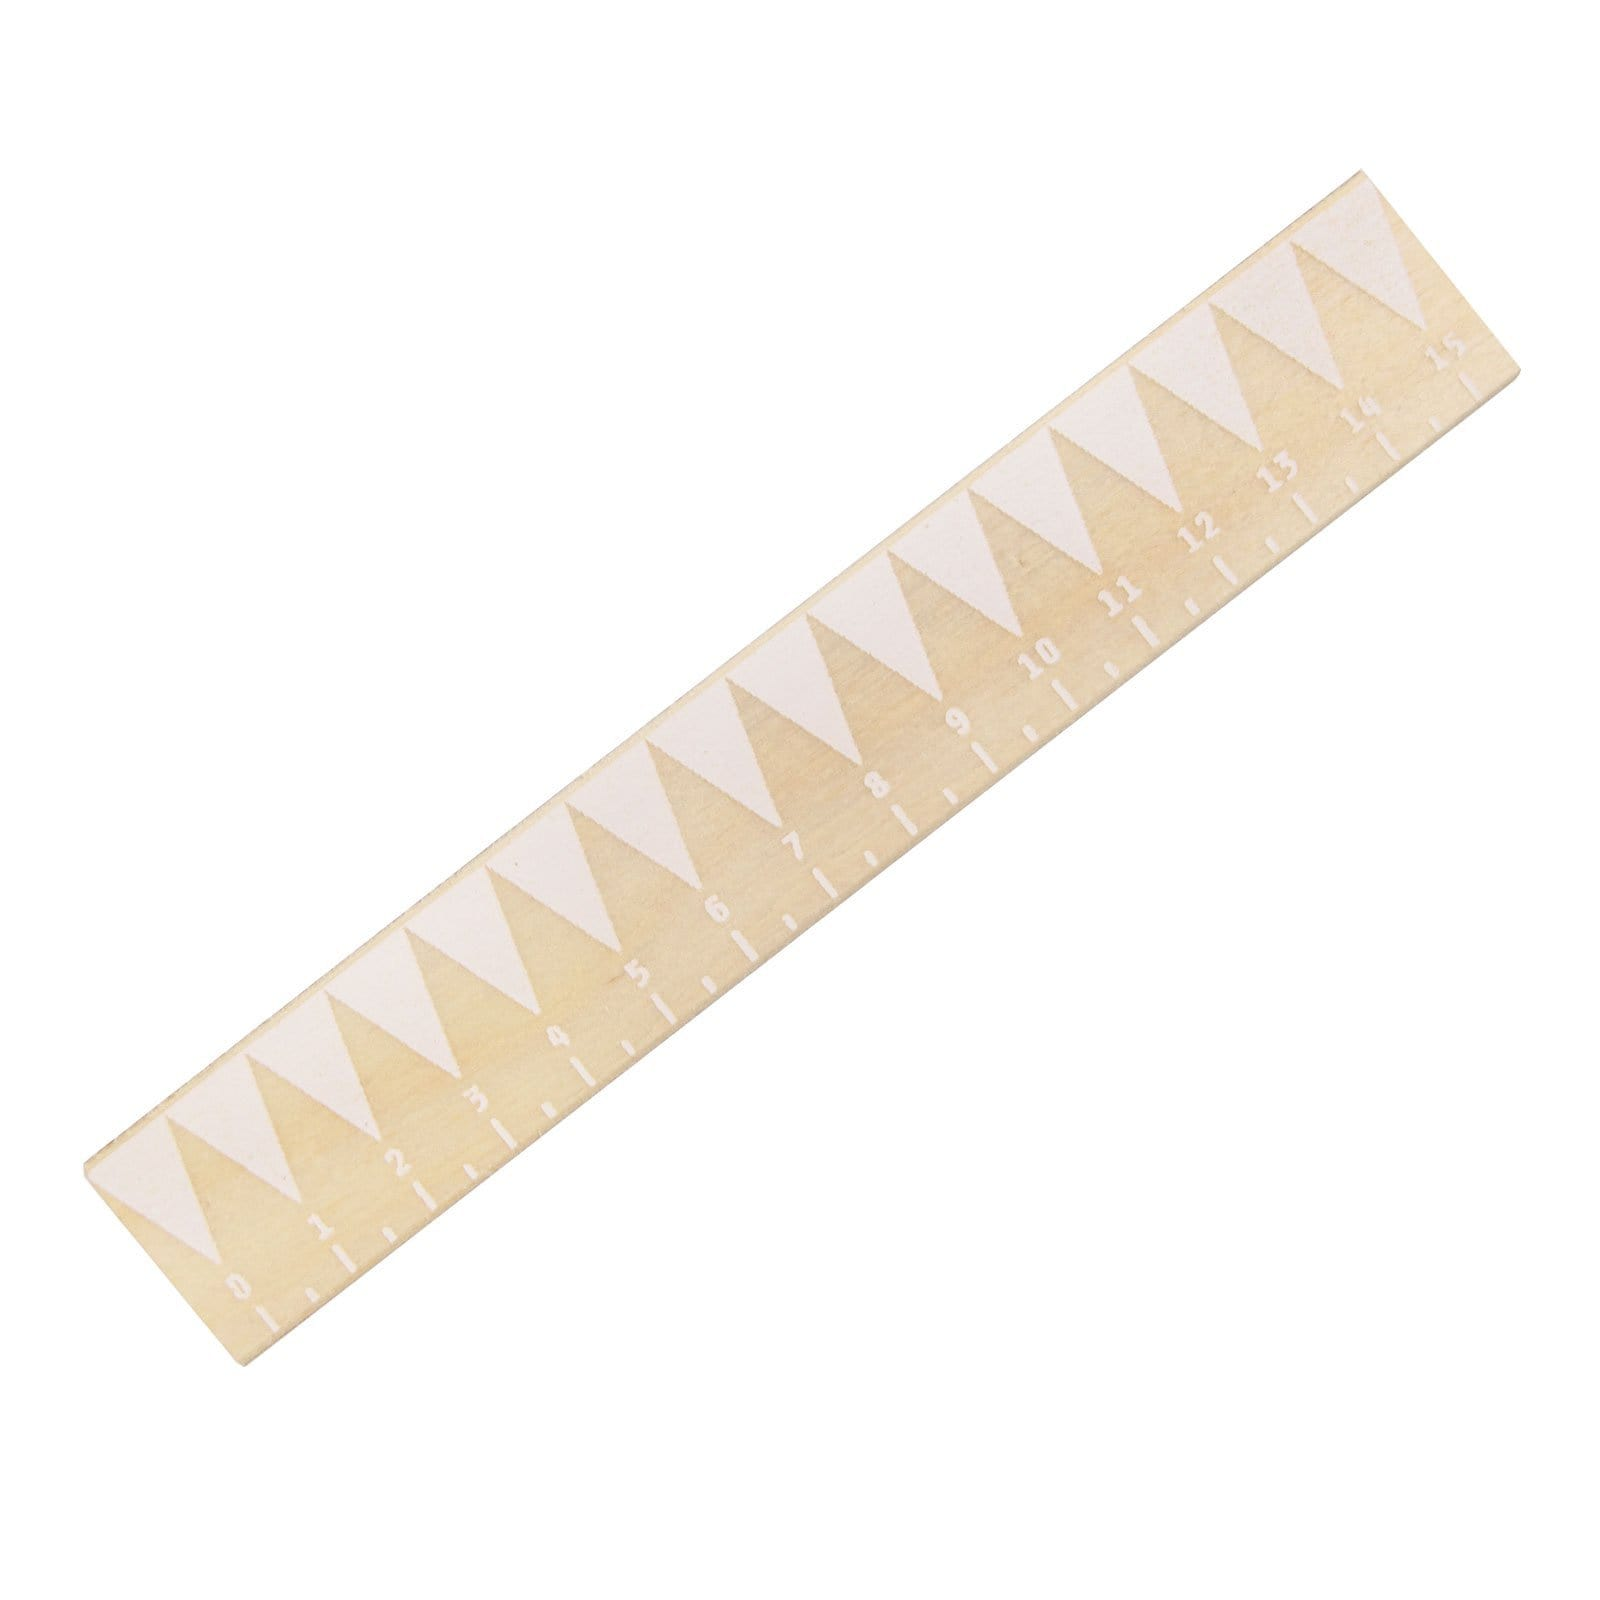 Small White Zig Zag Ruler